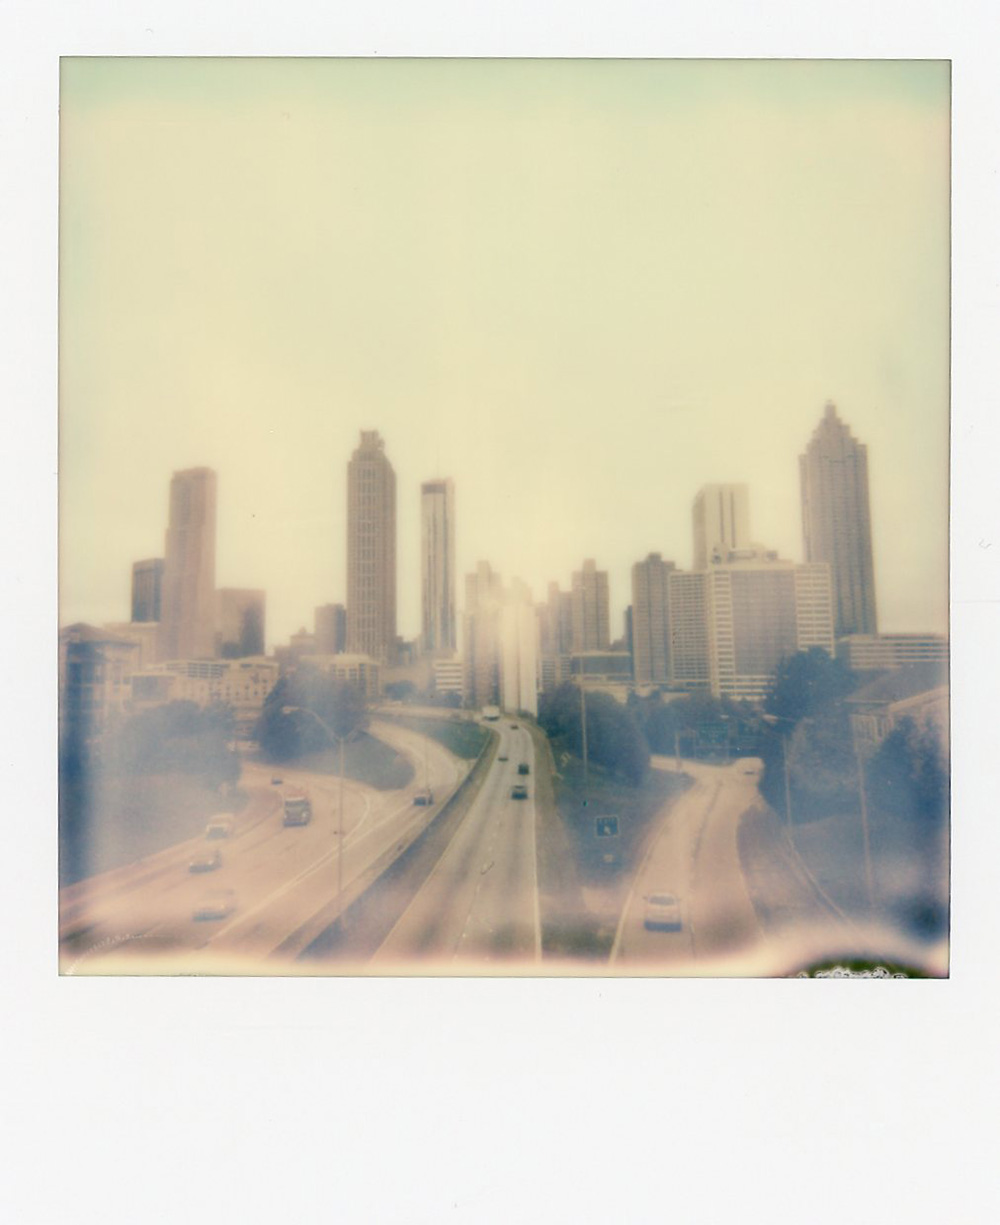 Atlanta, Georgia | Impossible Color Film | Polaroid | Azzari Jarrett